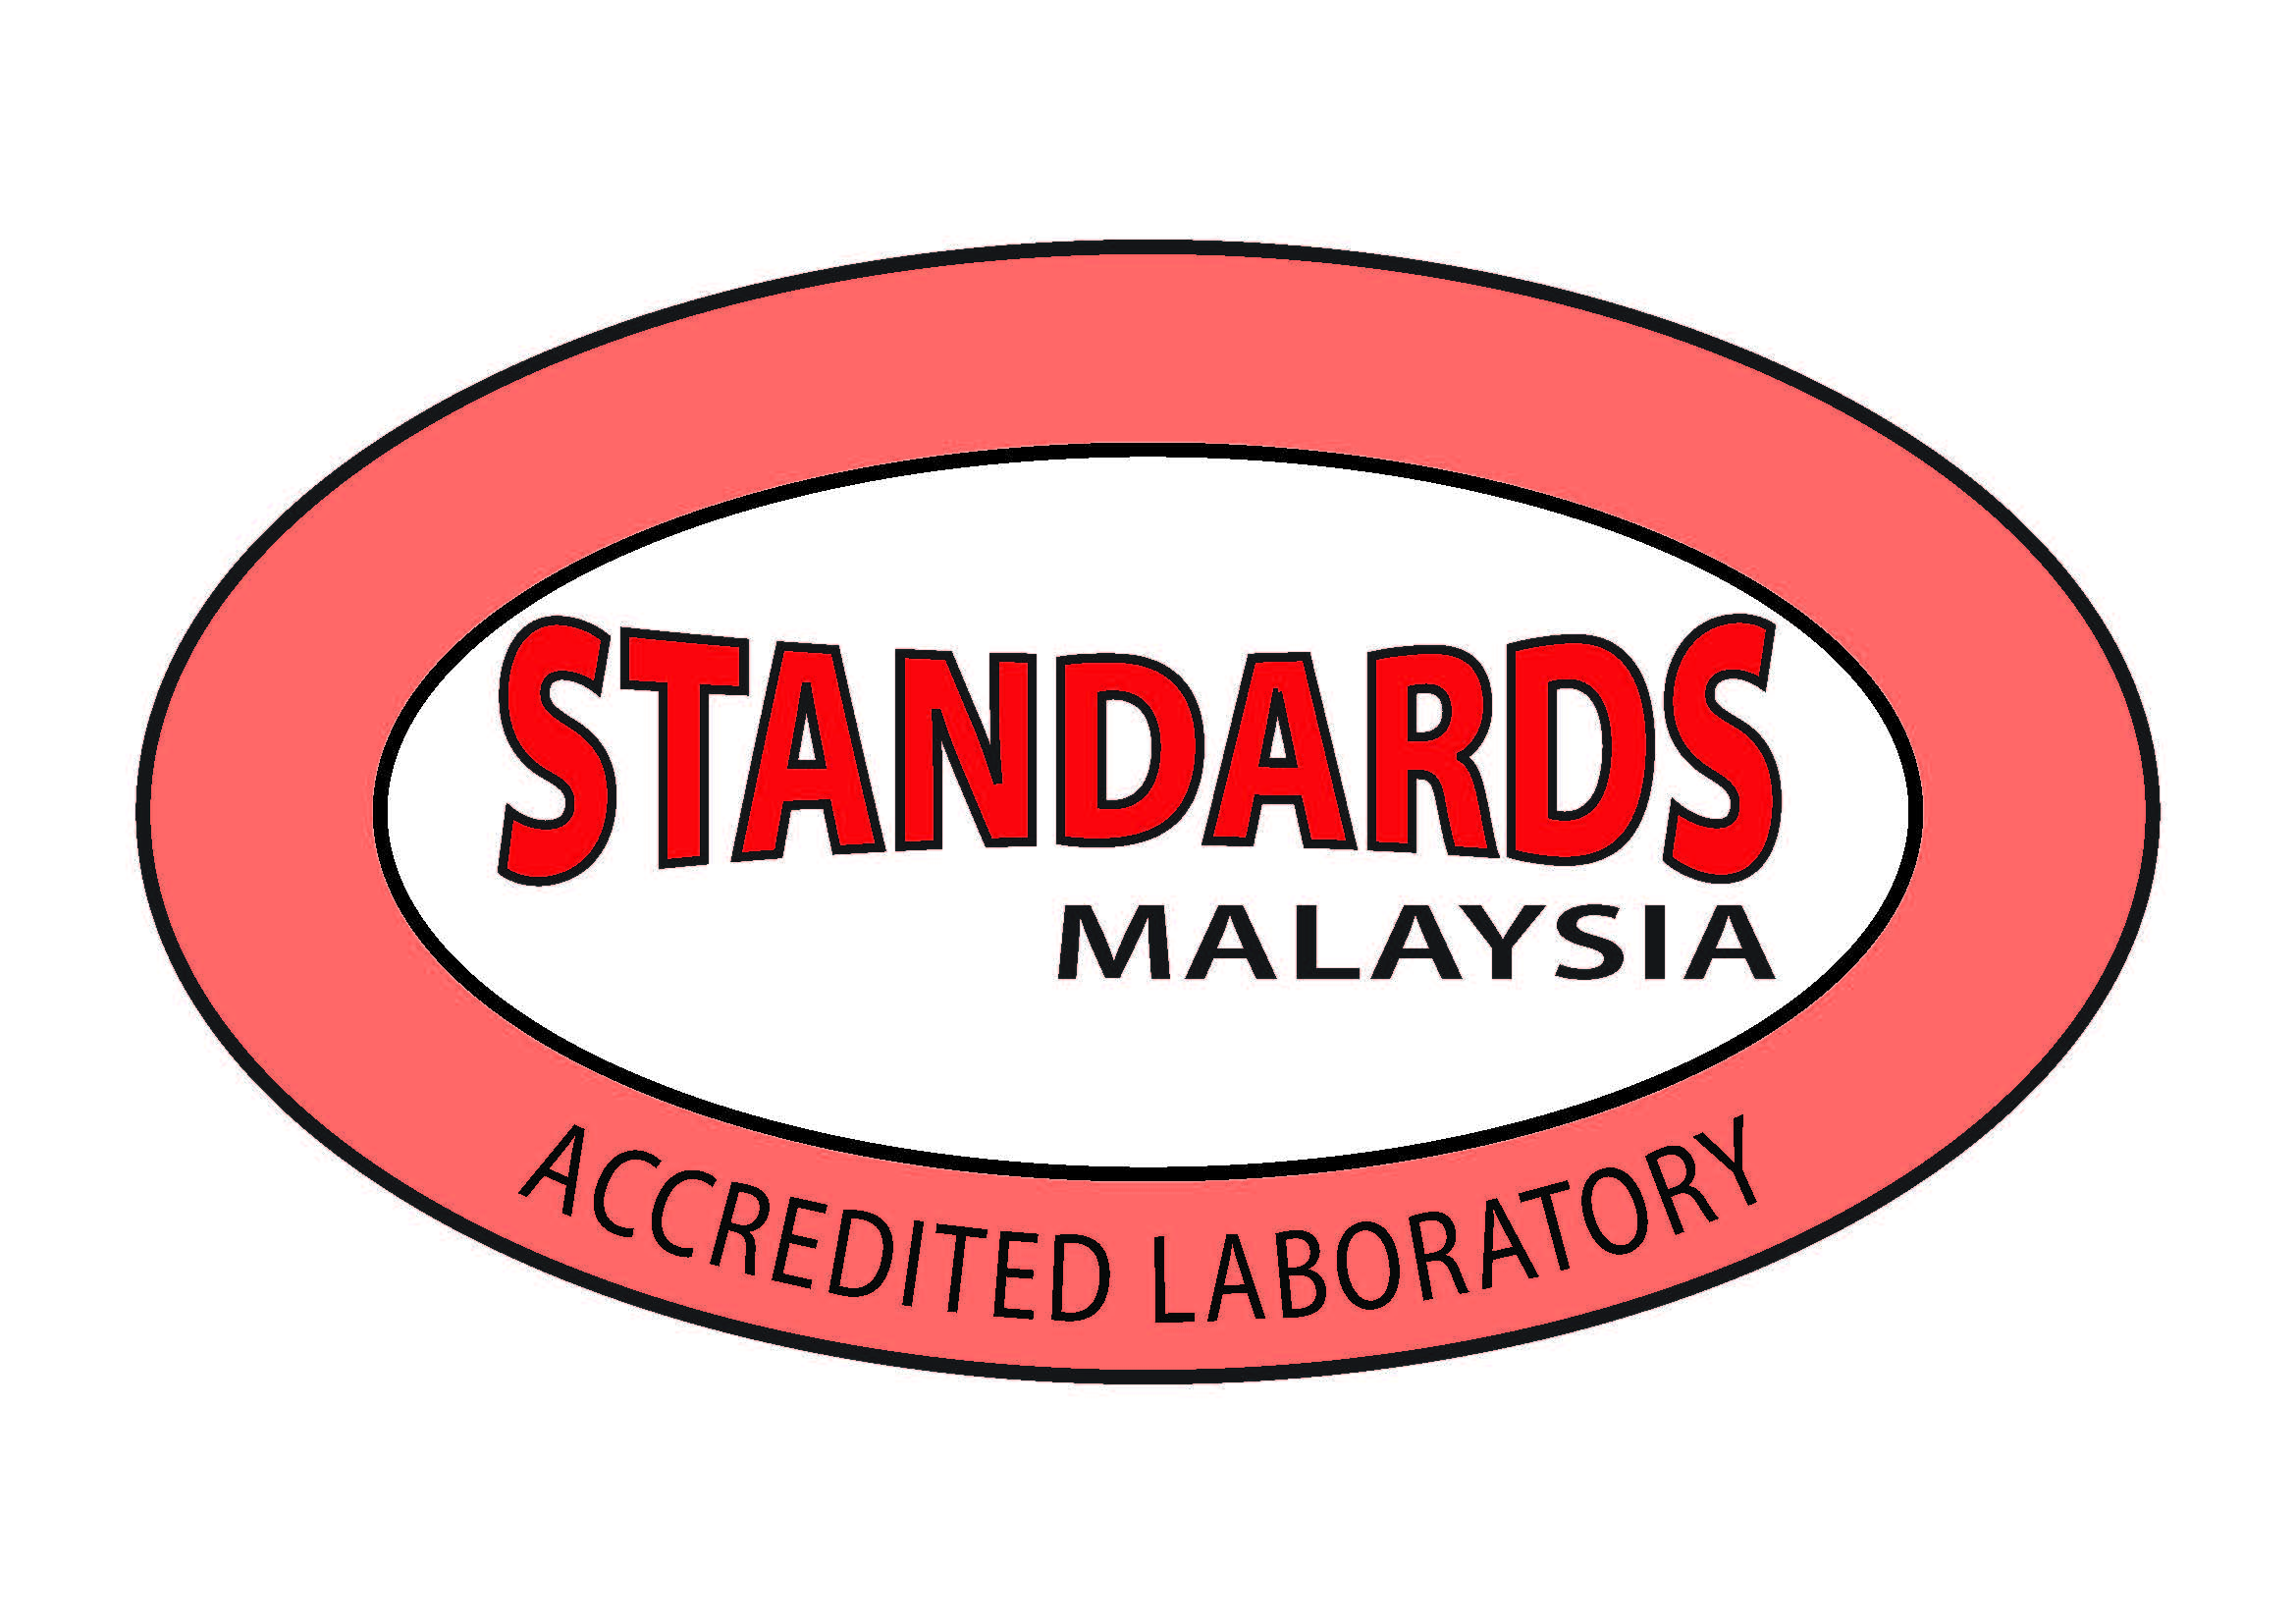 Sam Accredited Laboratory